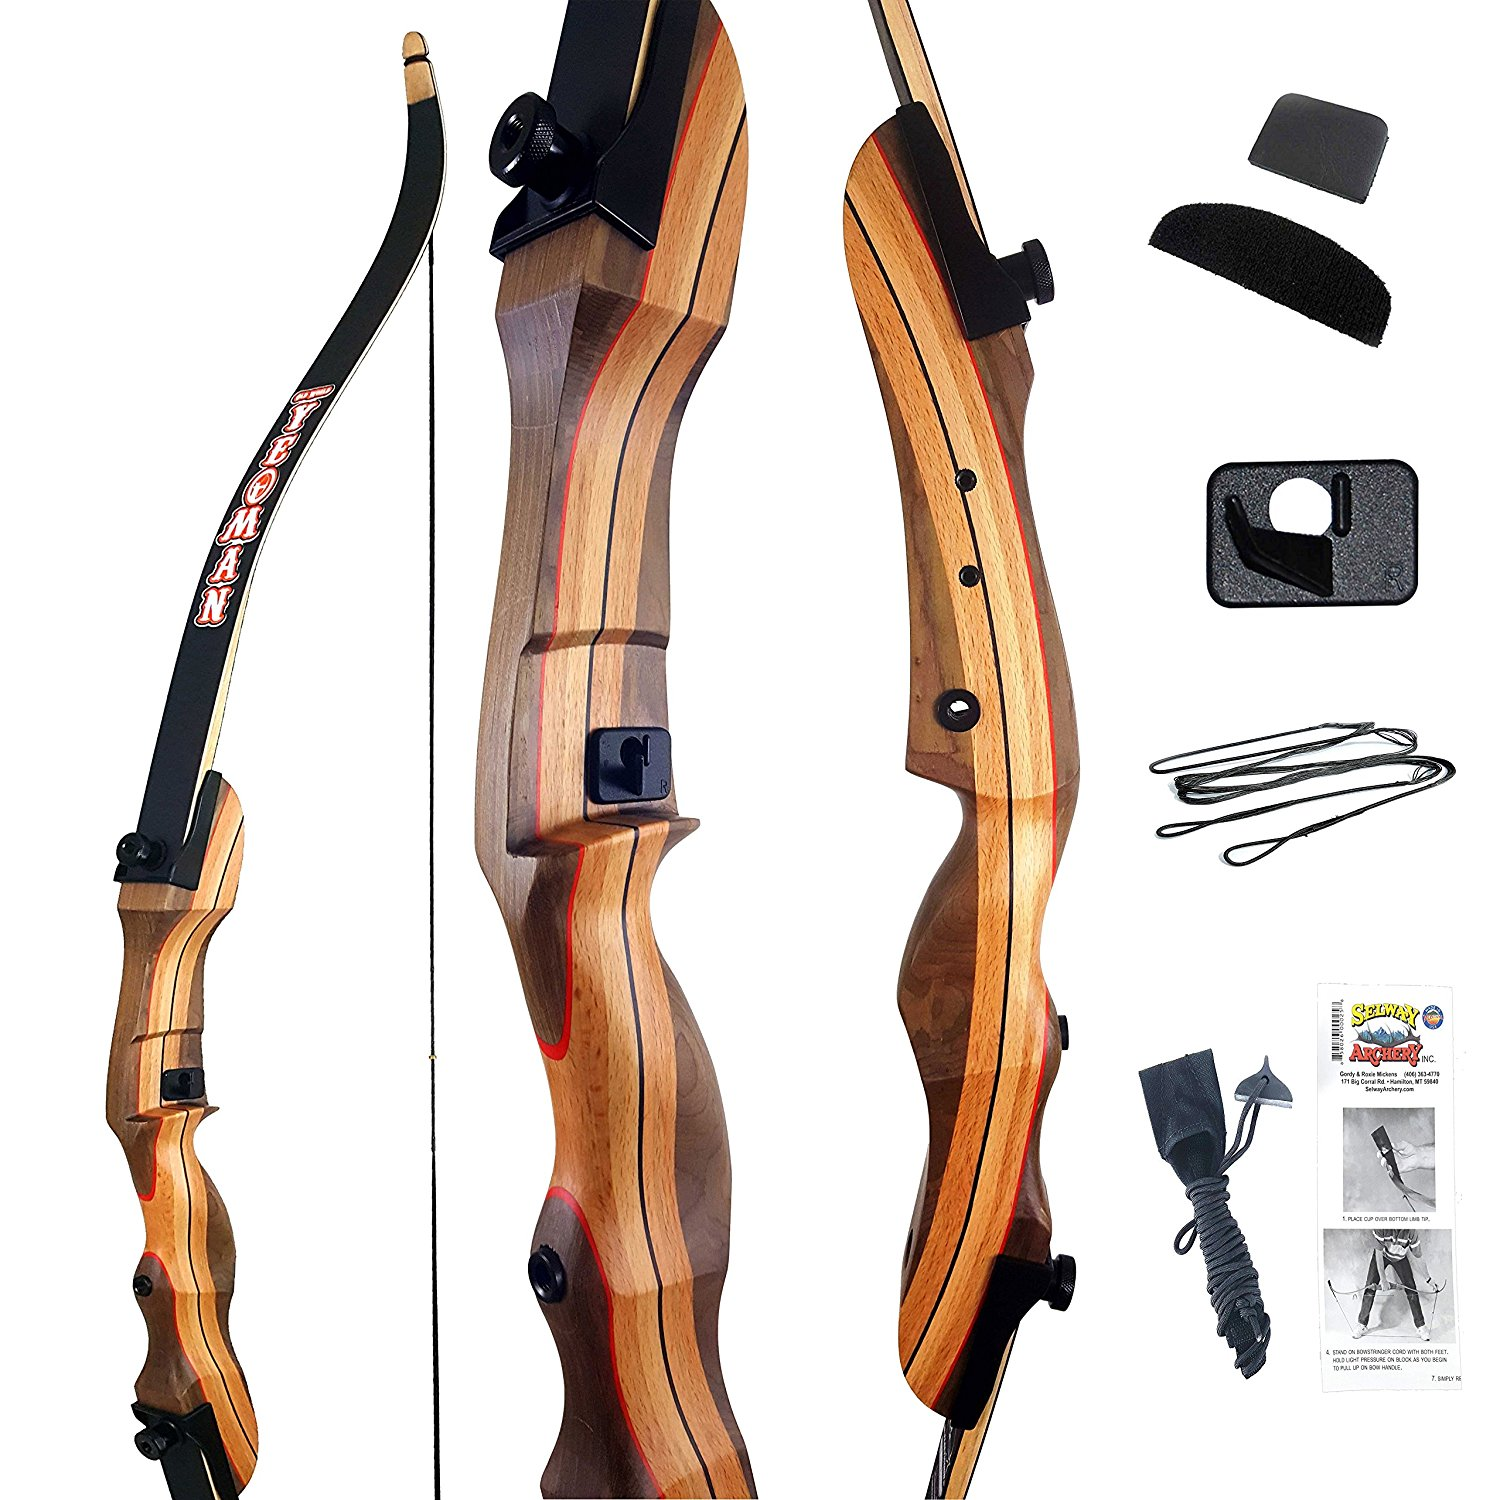 Archery Recurve Takedown Bow for Adults Sets 45LBS Hunting Target Outdoor Sports